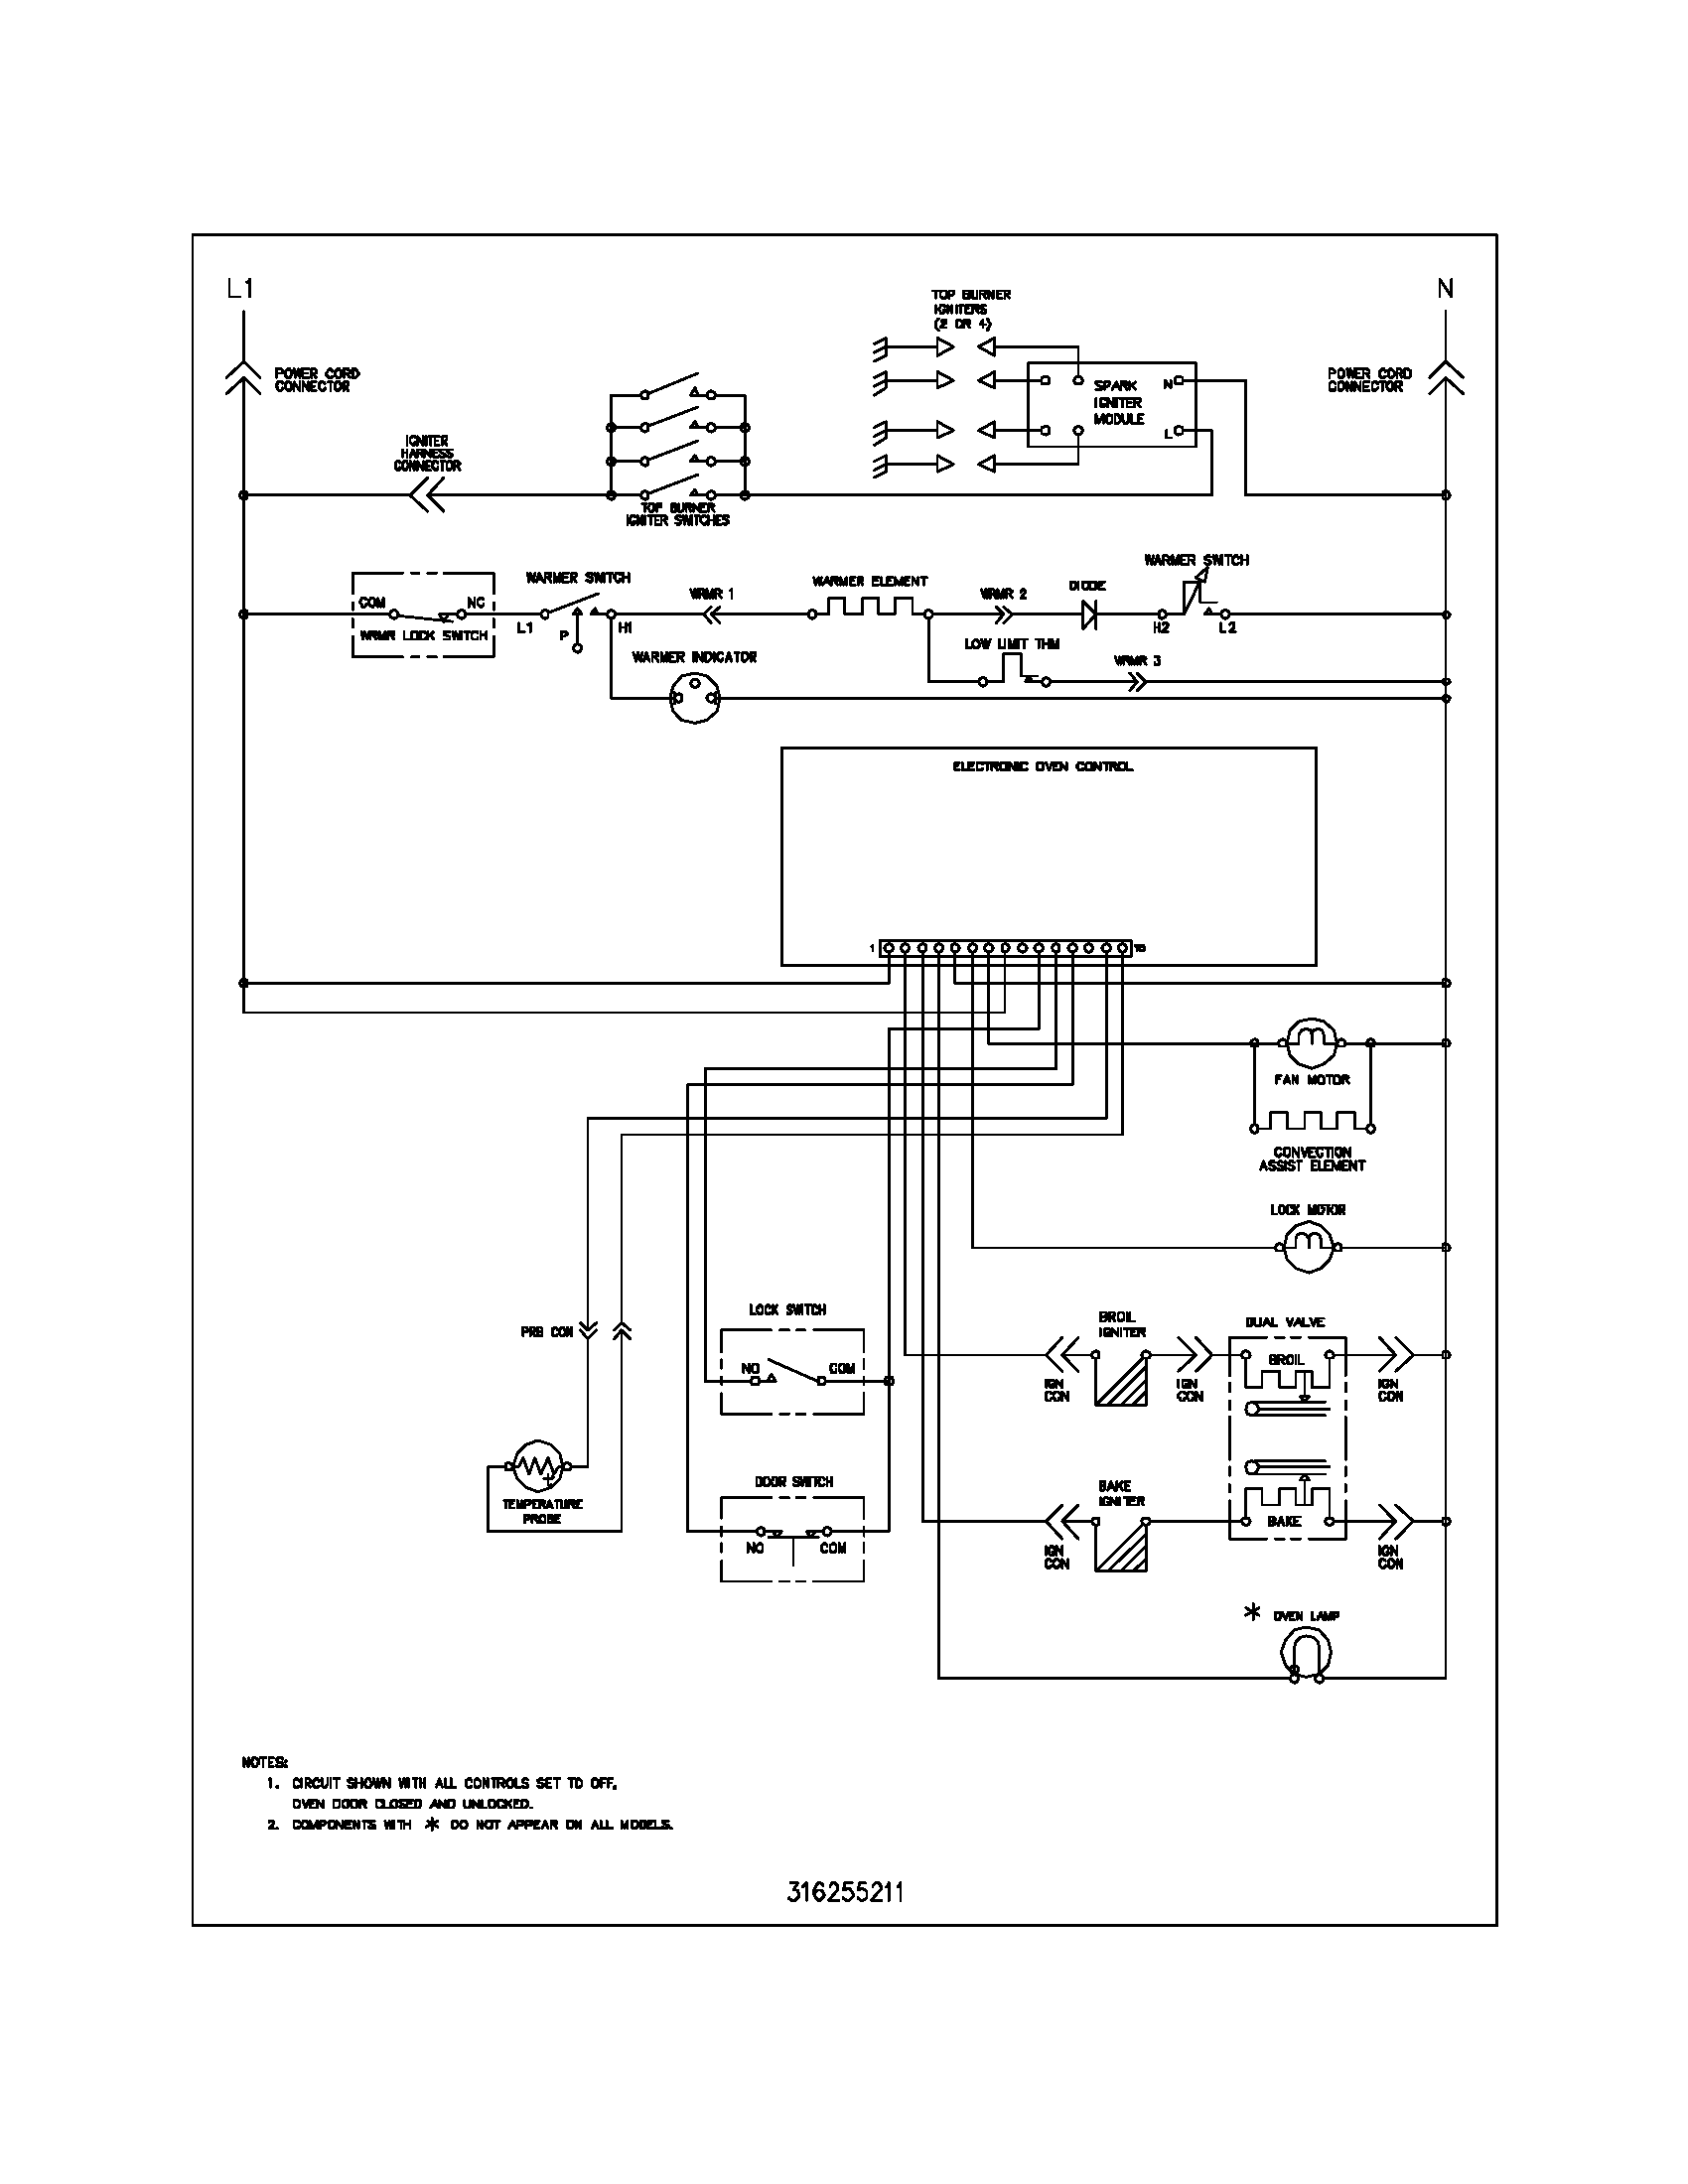 wiring schematic parts frigidaire plgf389ccc gas range timer stove clocks and appliance freezer room wiring diagram at n-0.co